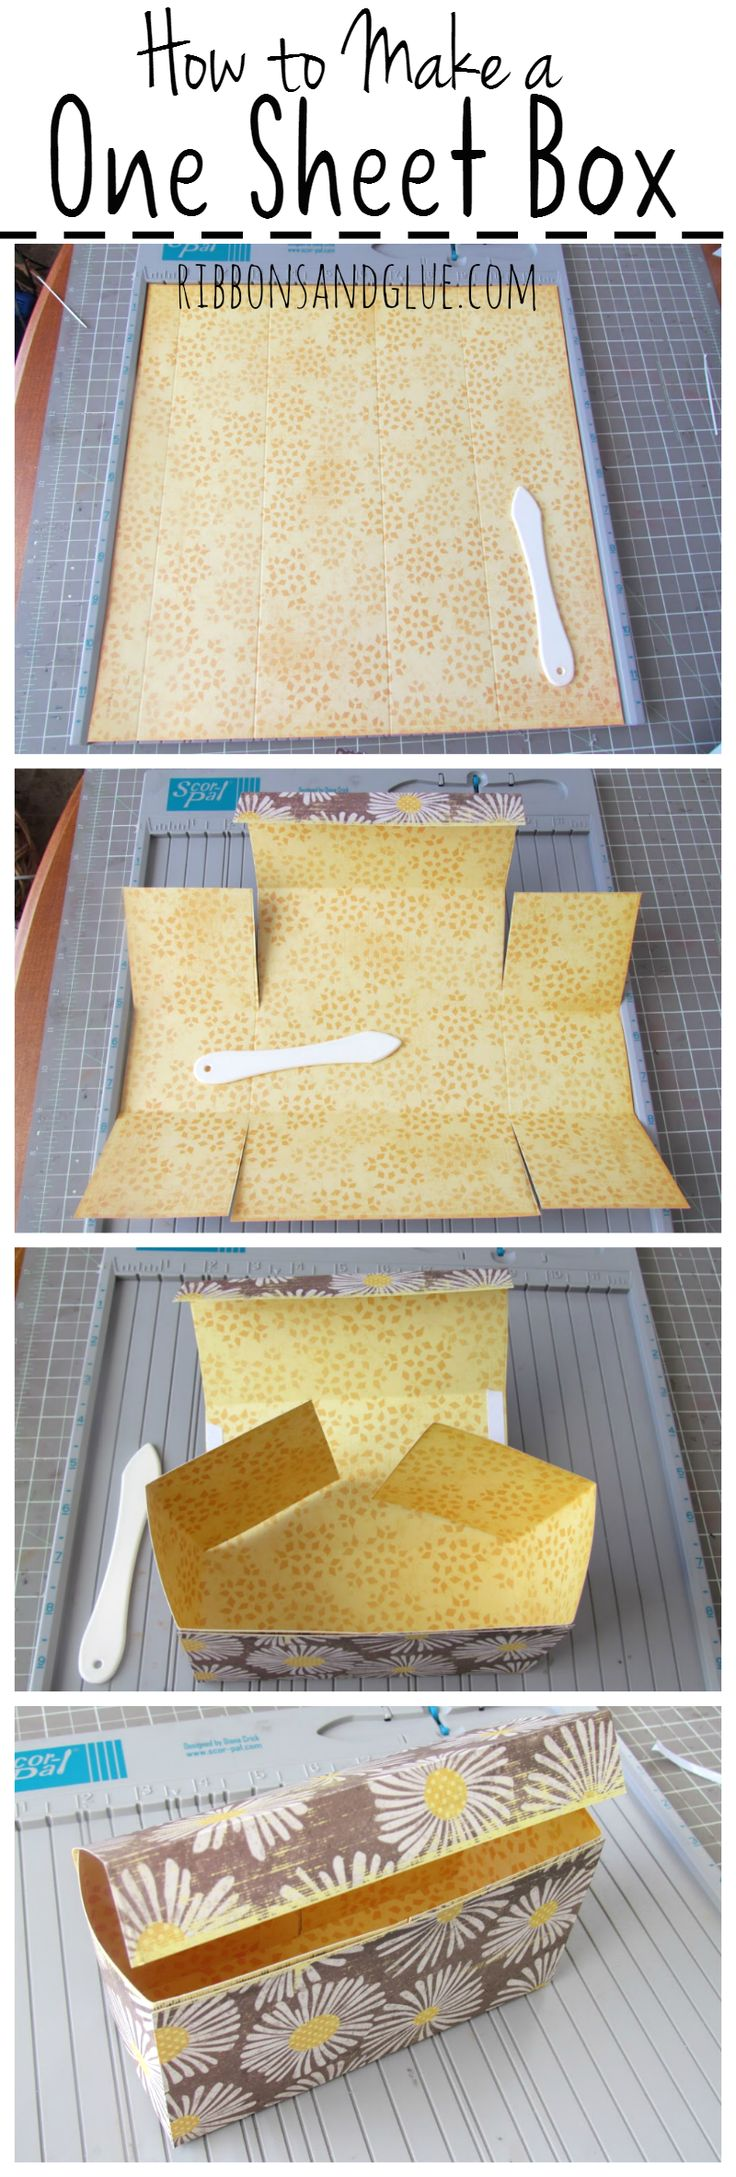 DIY box: Easy Box Tutorial made out of one sheet of 12 x 12 Scrapbook Paper. This perfect size treat box can easily hold a small gifts or homemade treats. Printable step by step instructions included too.